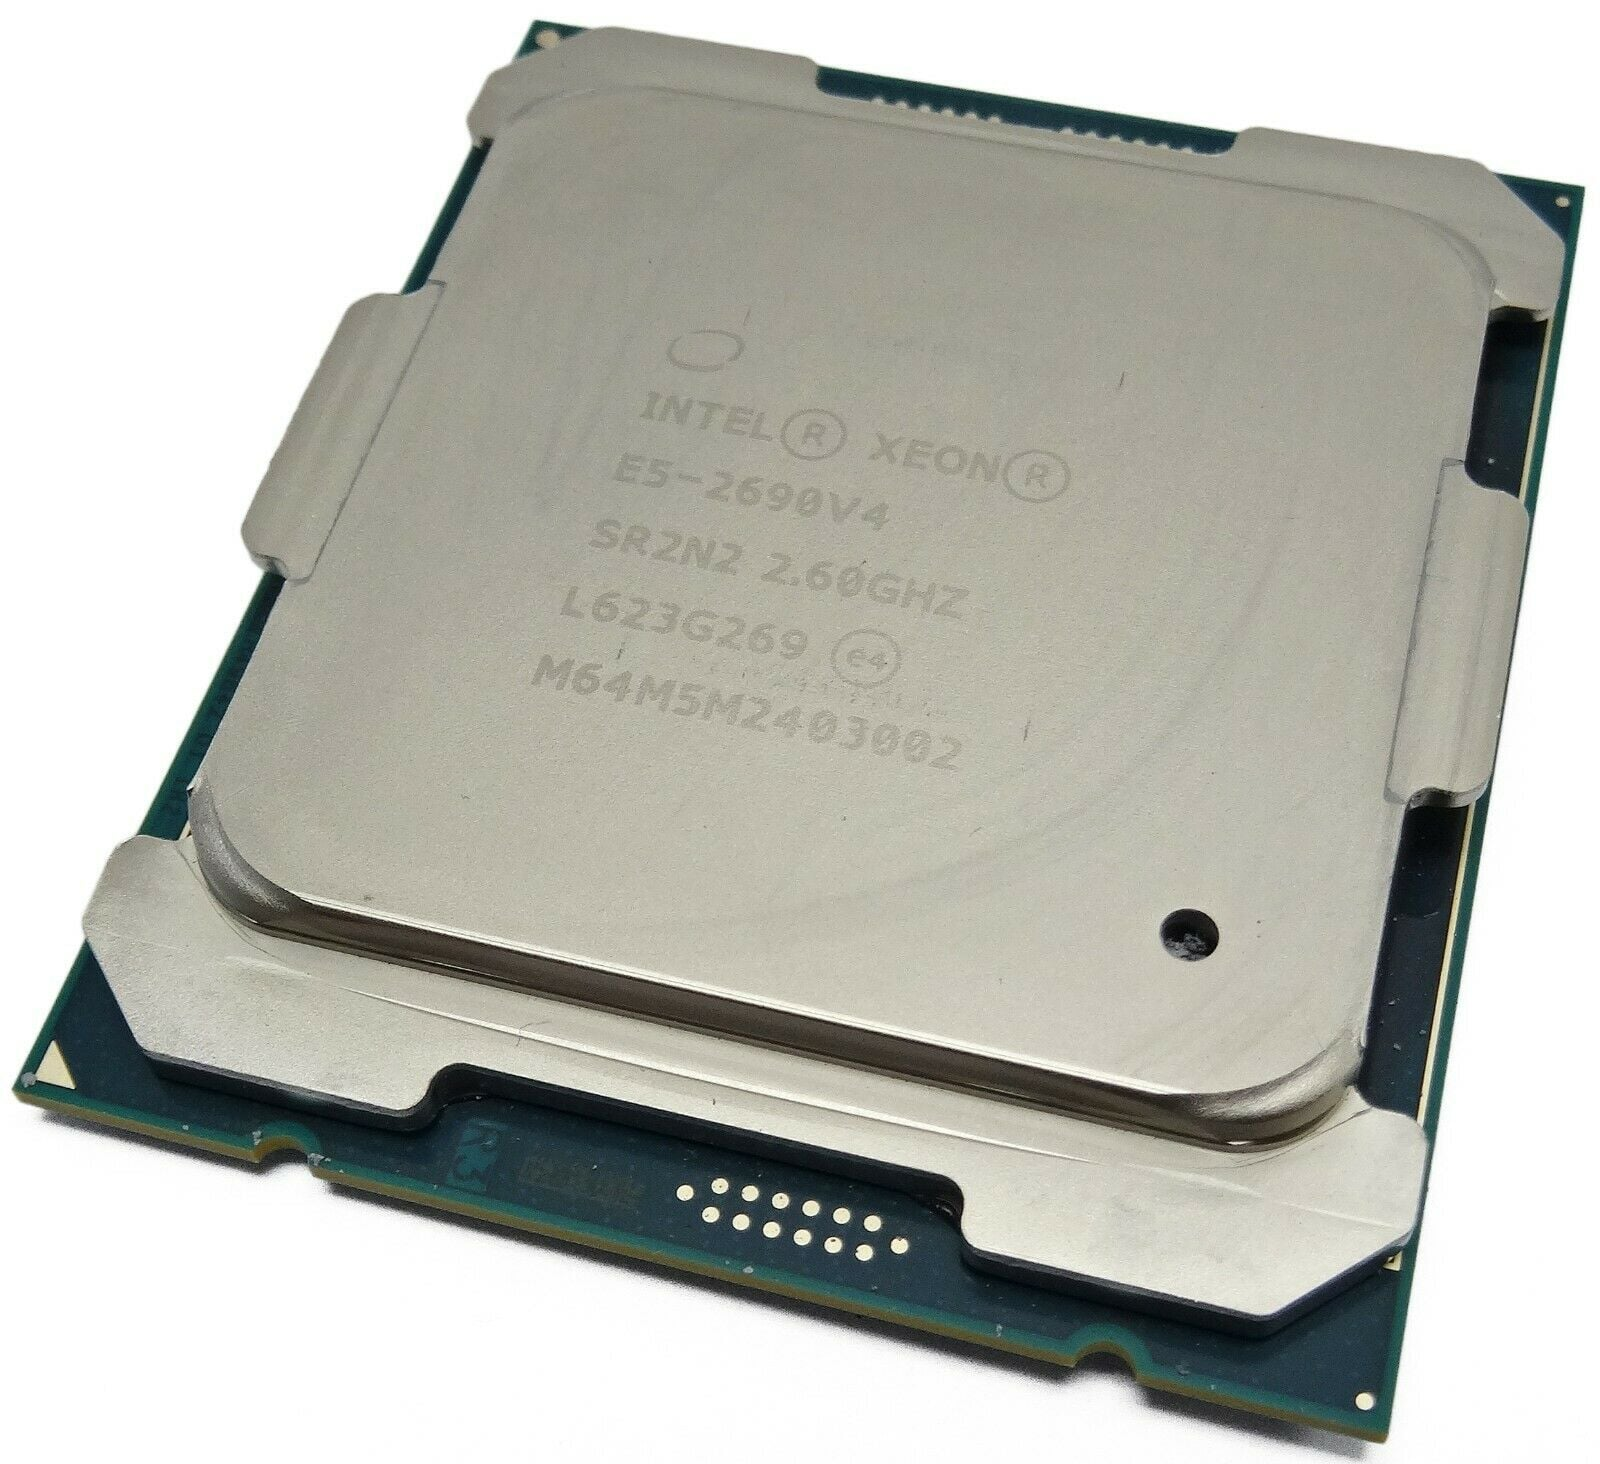 Intel Xeon E5-2690v4 2.6GHz 14-Core Socket R3 LGA 2011-3 CPU Processor SR2N2